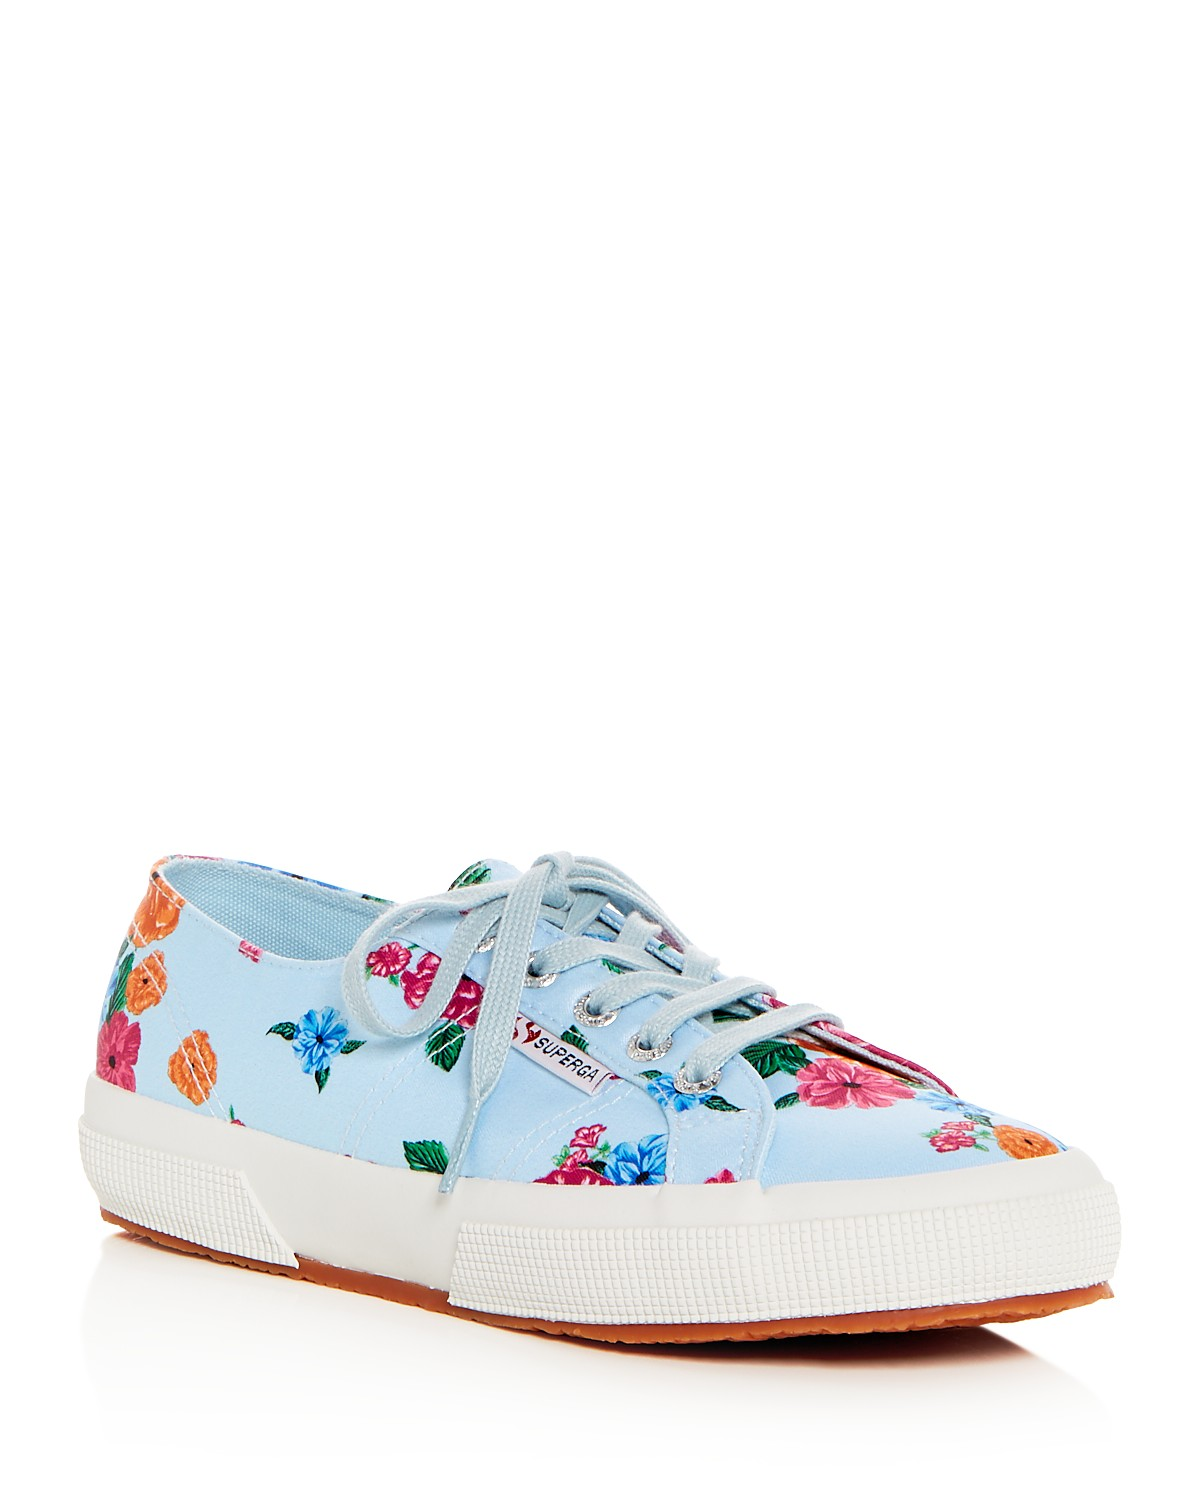 Superga Women's Classic Floral Satin Lace Up Sneakers Wtda7